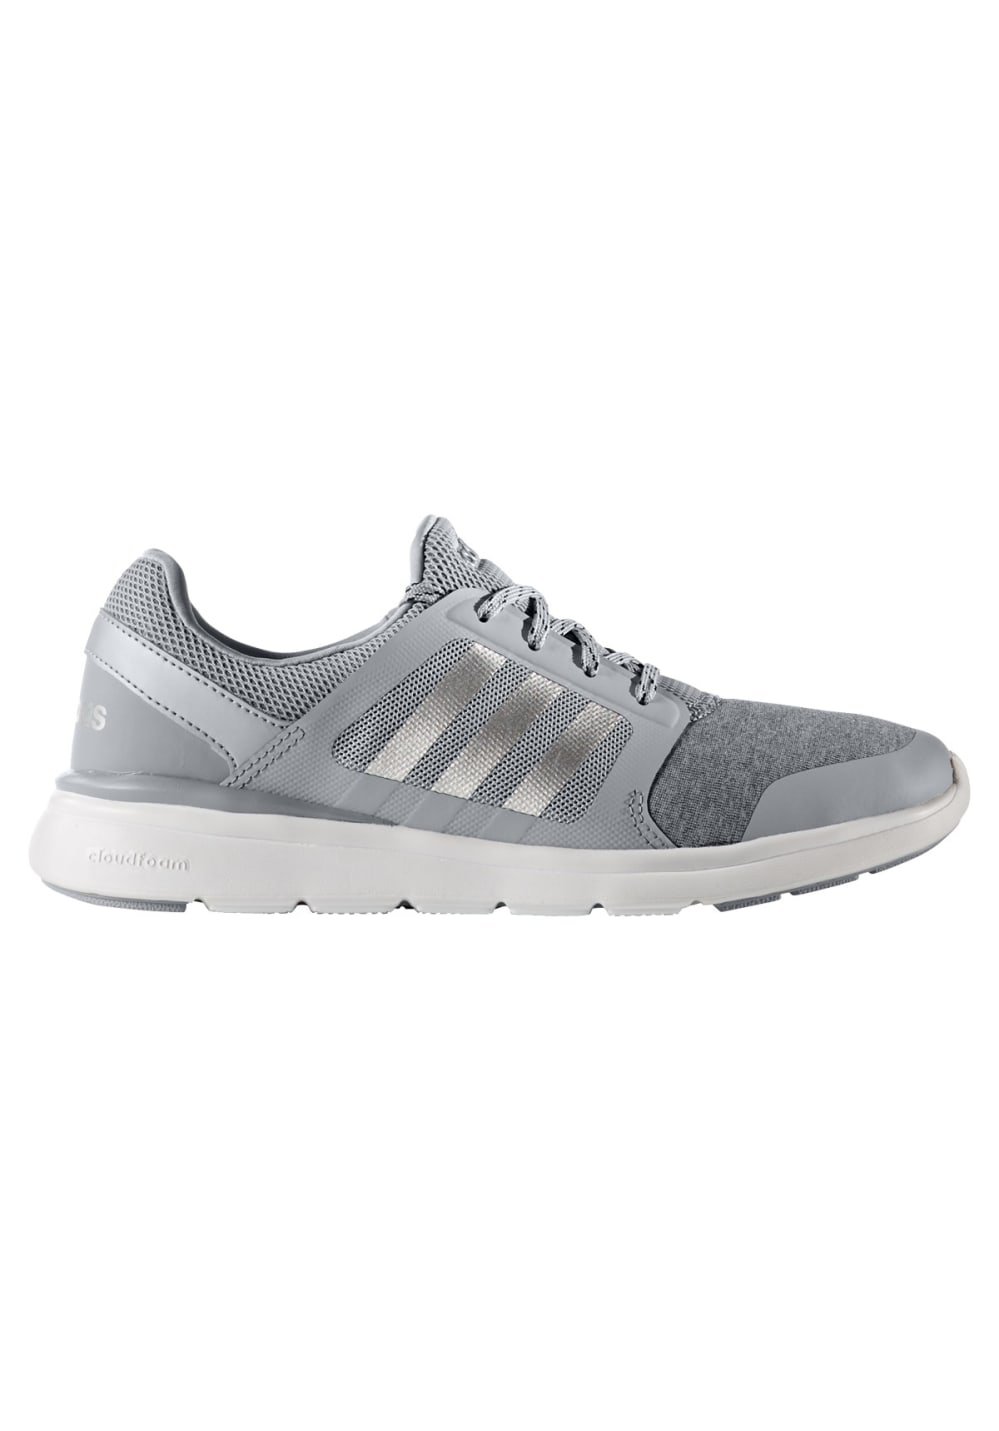 arrives eb17f d6352 adidas neo cloudfoam xpression sneaker